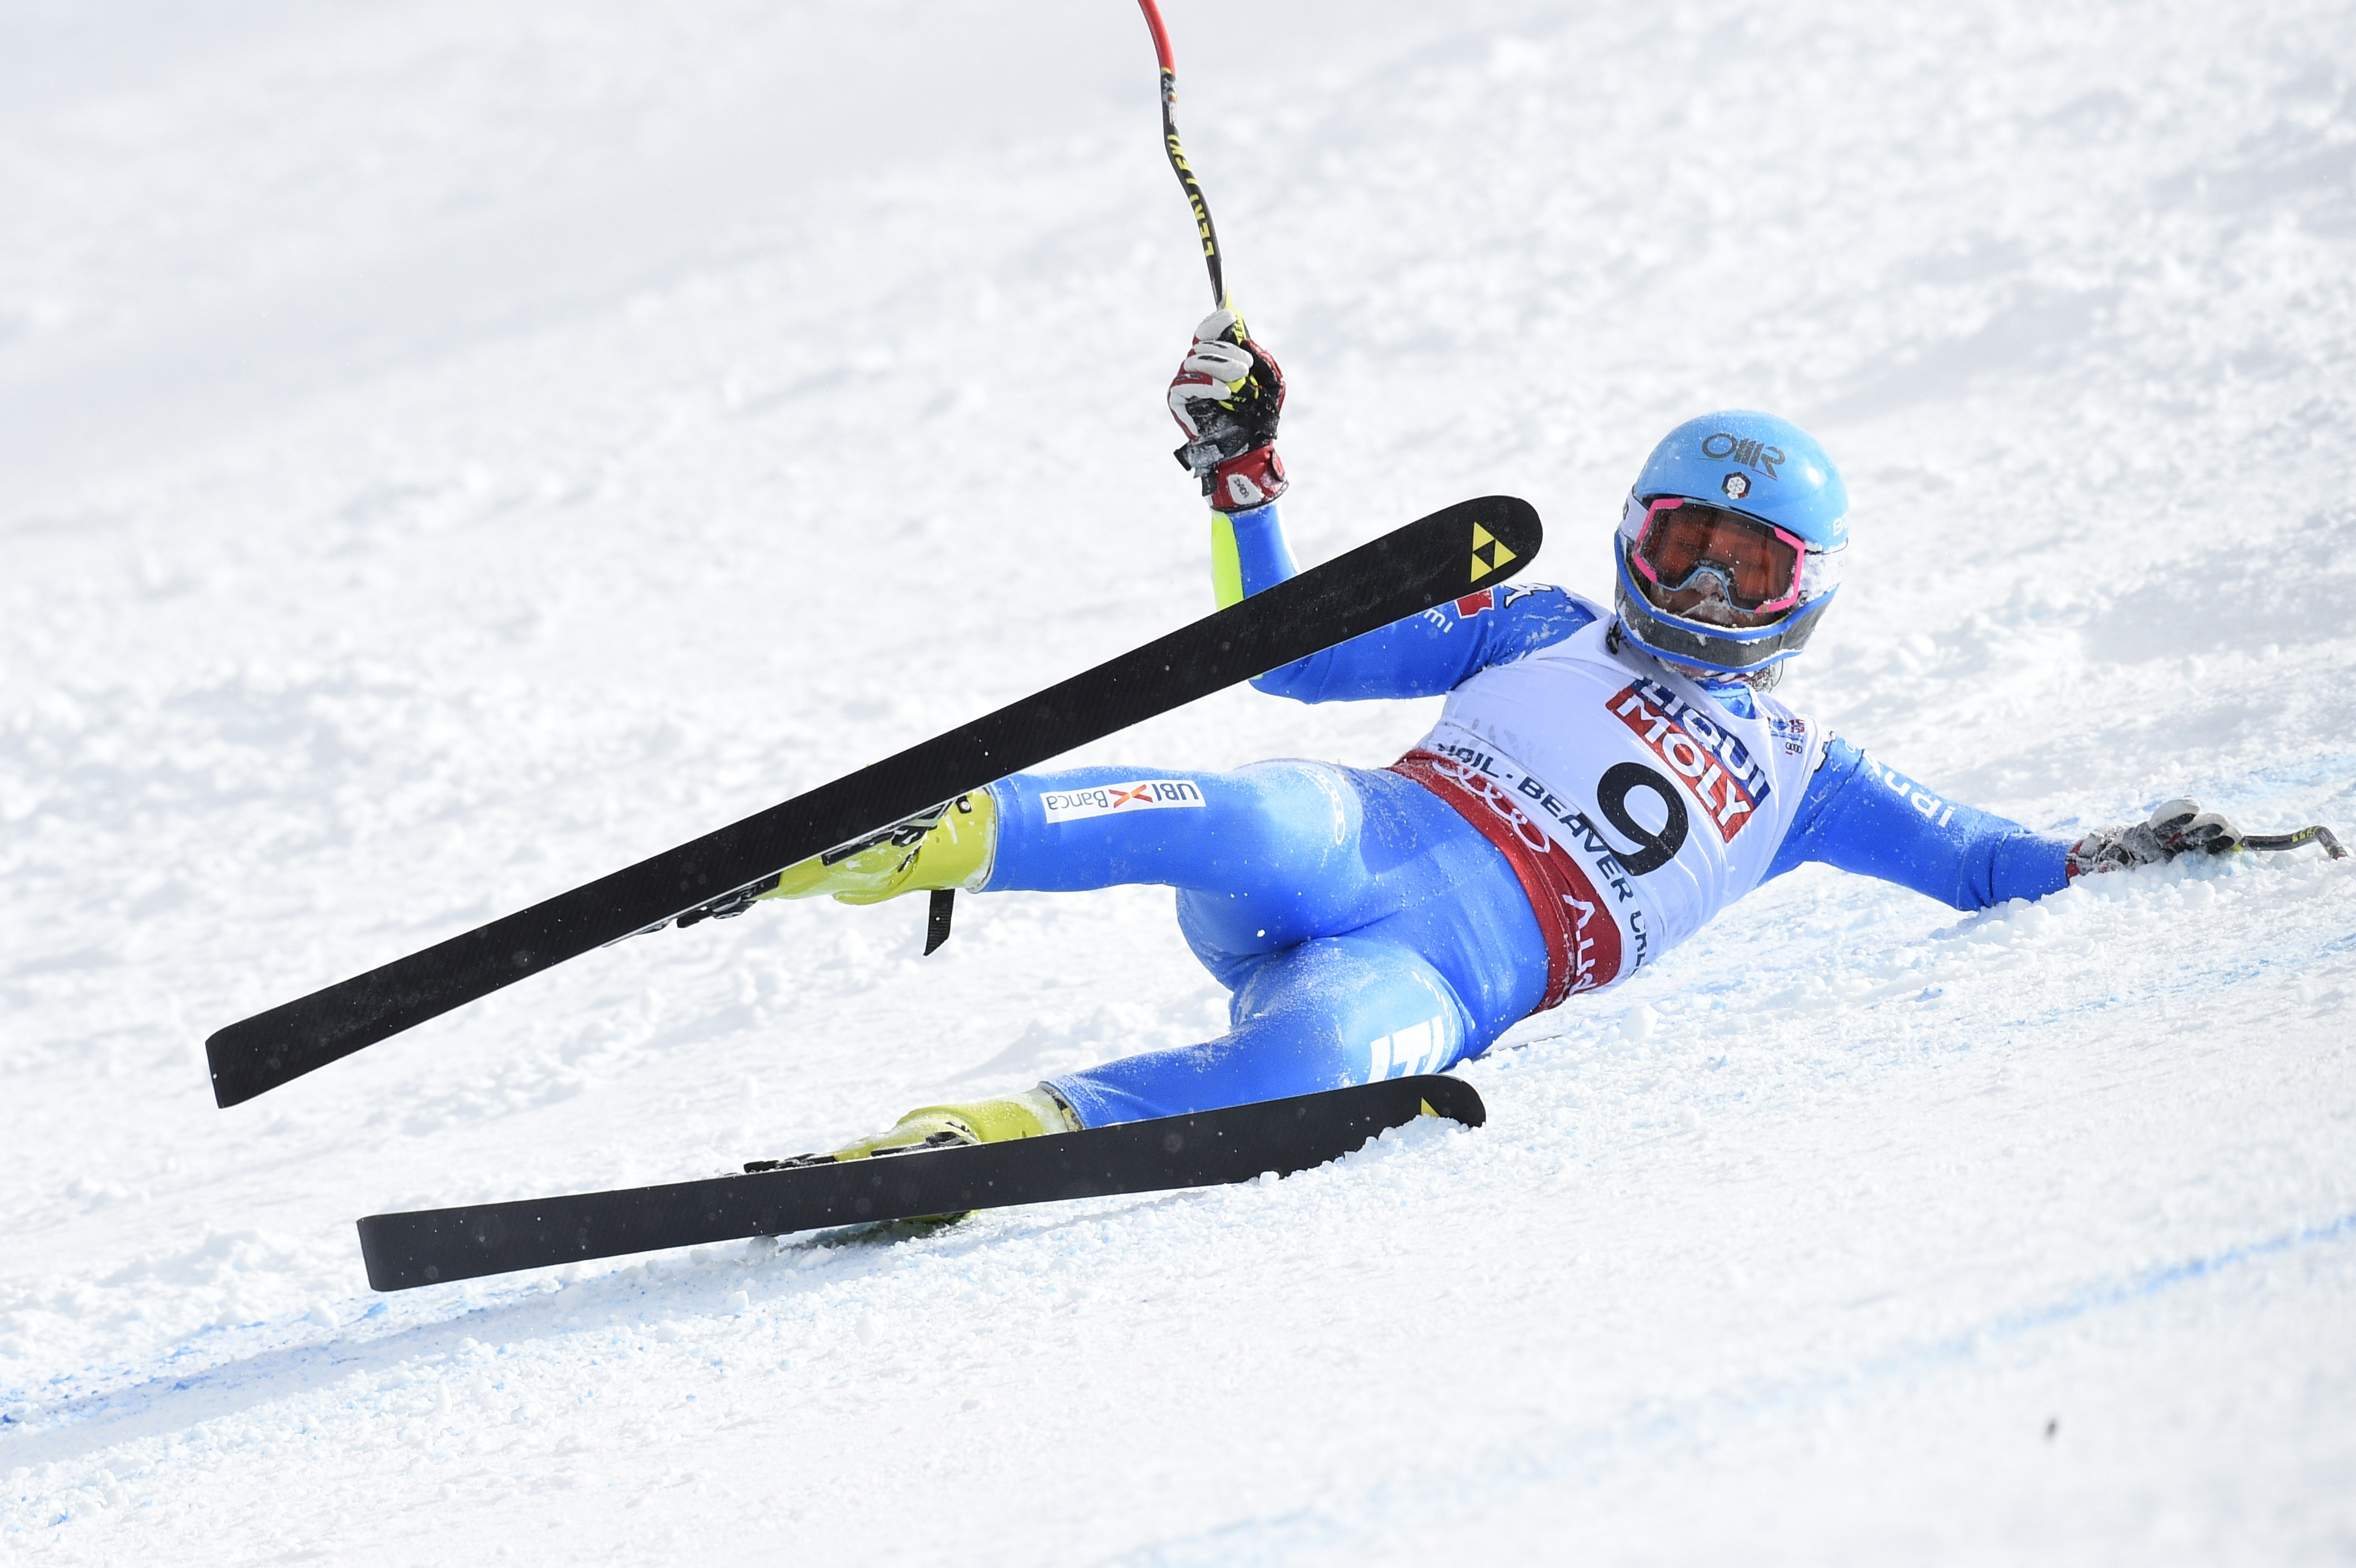 Daniela Merighetti of Italy crashes out during the FIS Alpine World Ski Championships Women's Super G on February 03, 2015 in Beaver Creek, Colorado. (Photo by Alain Grosclaude/Agence Zoom/Getty Images)